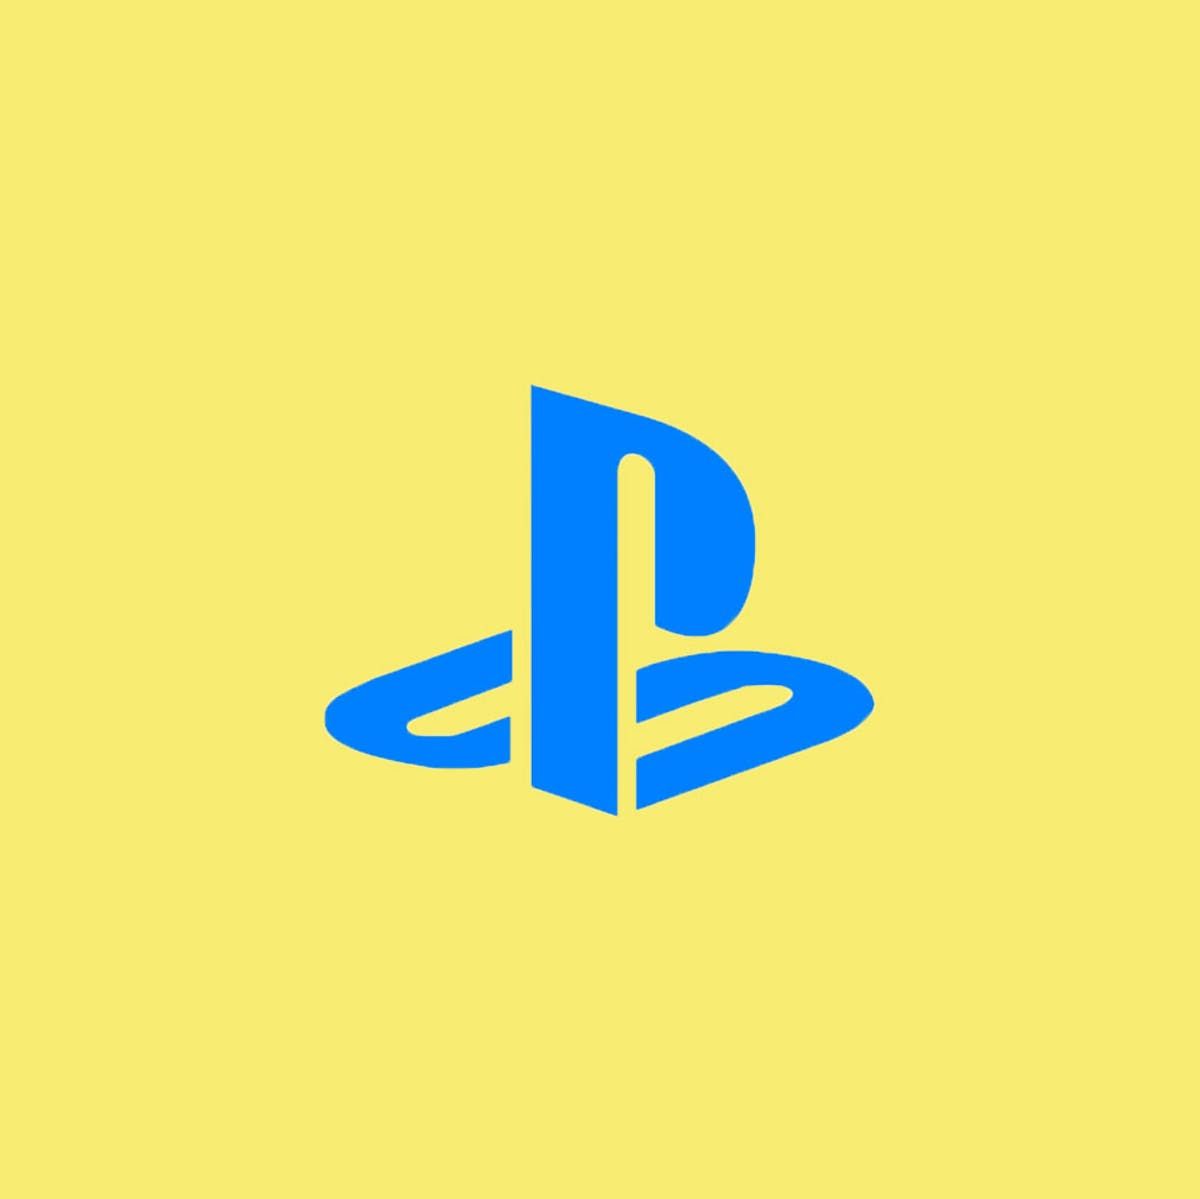 PS5 Release Date Could Be Earlier Than Expected, Dev Kit Suggests